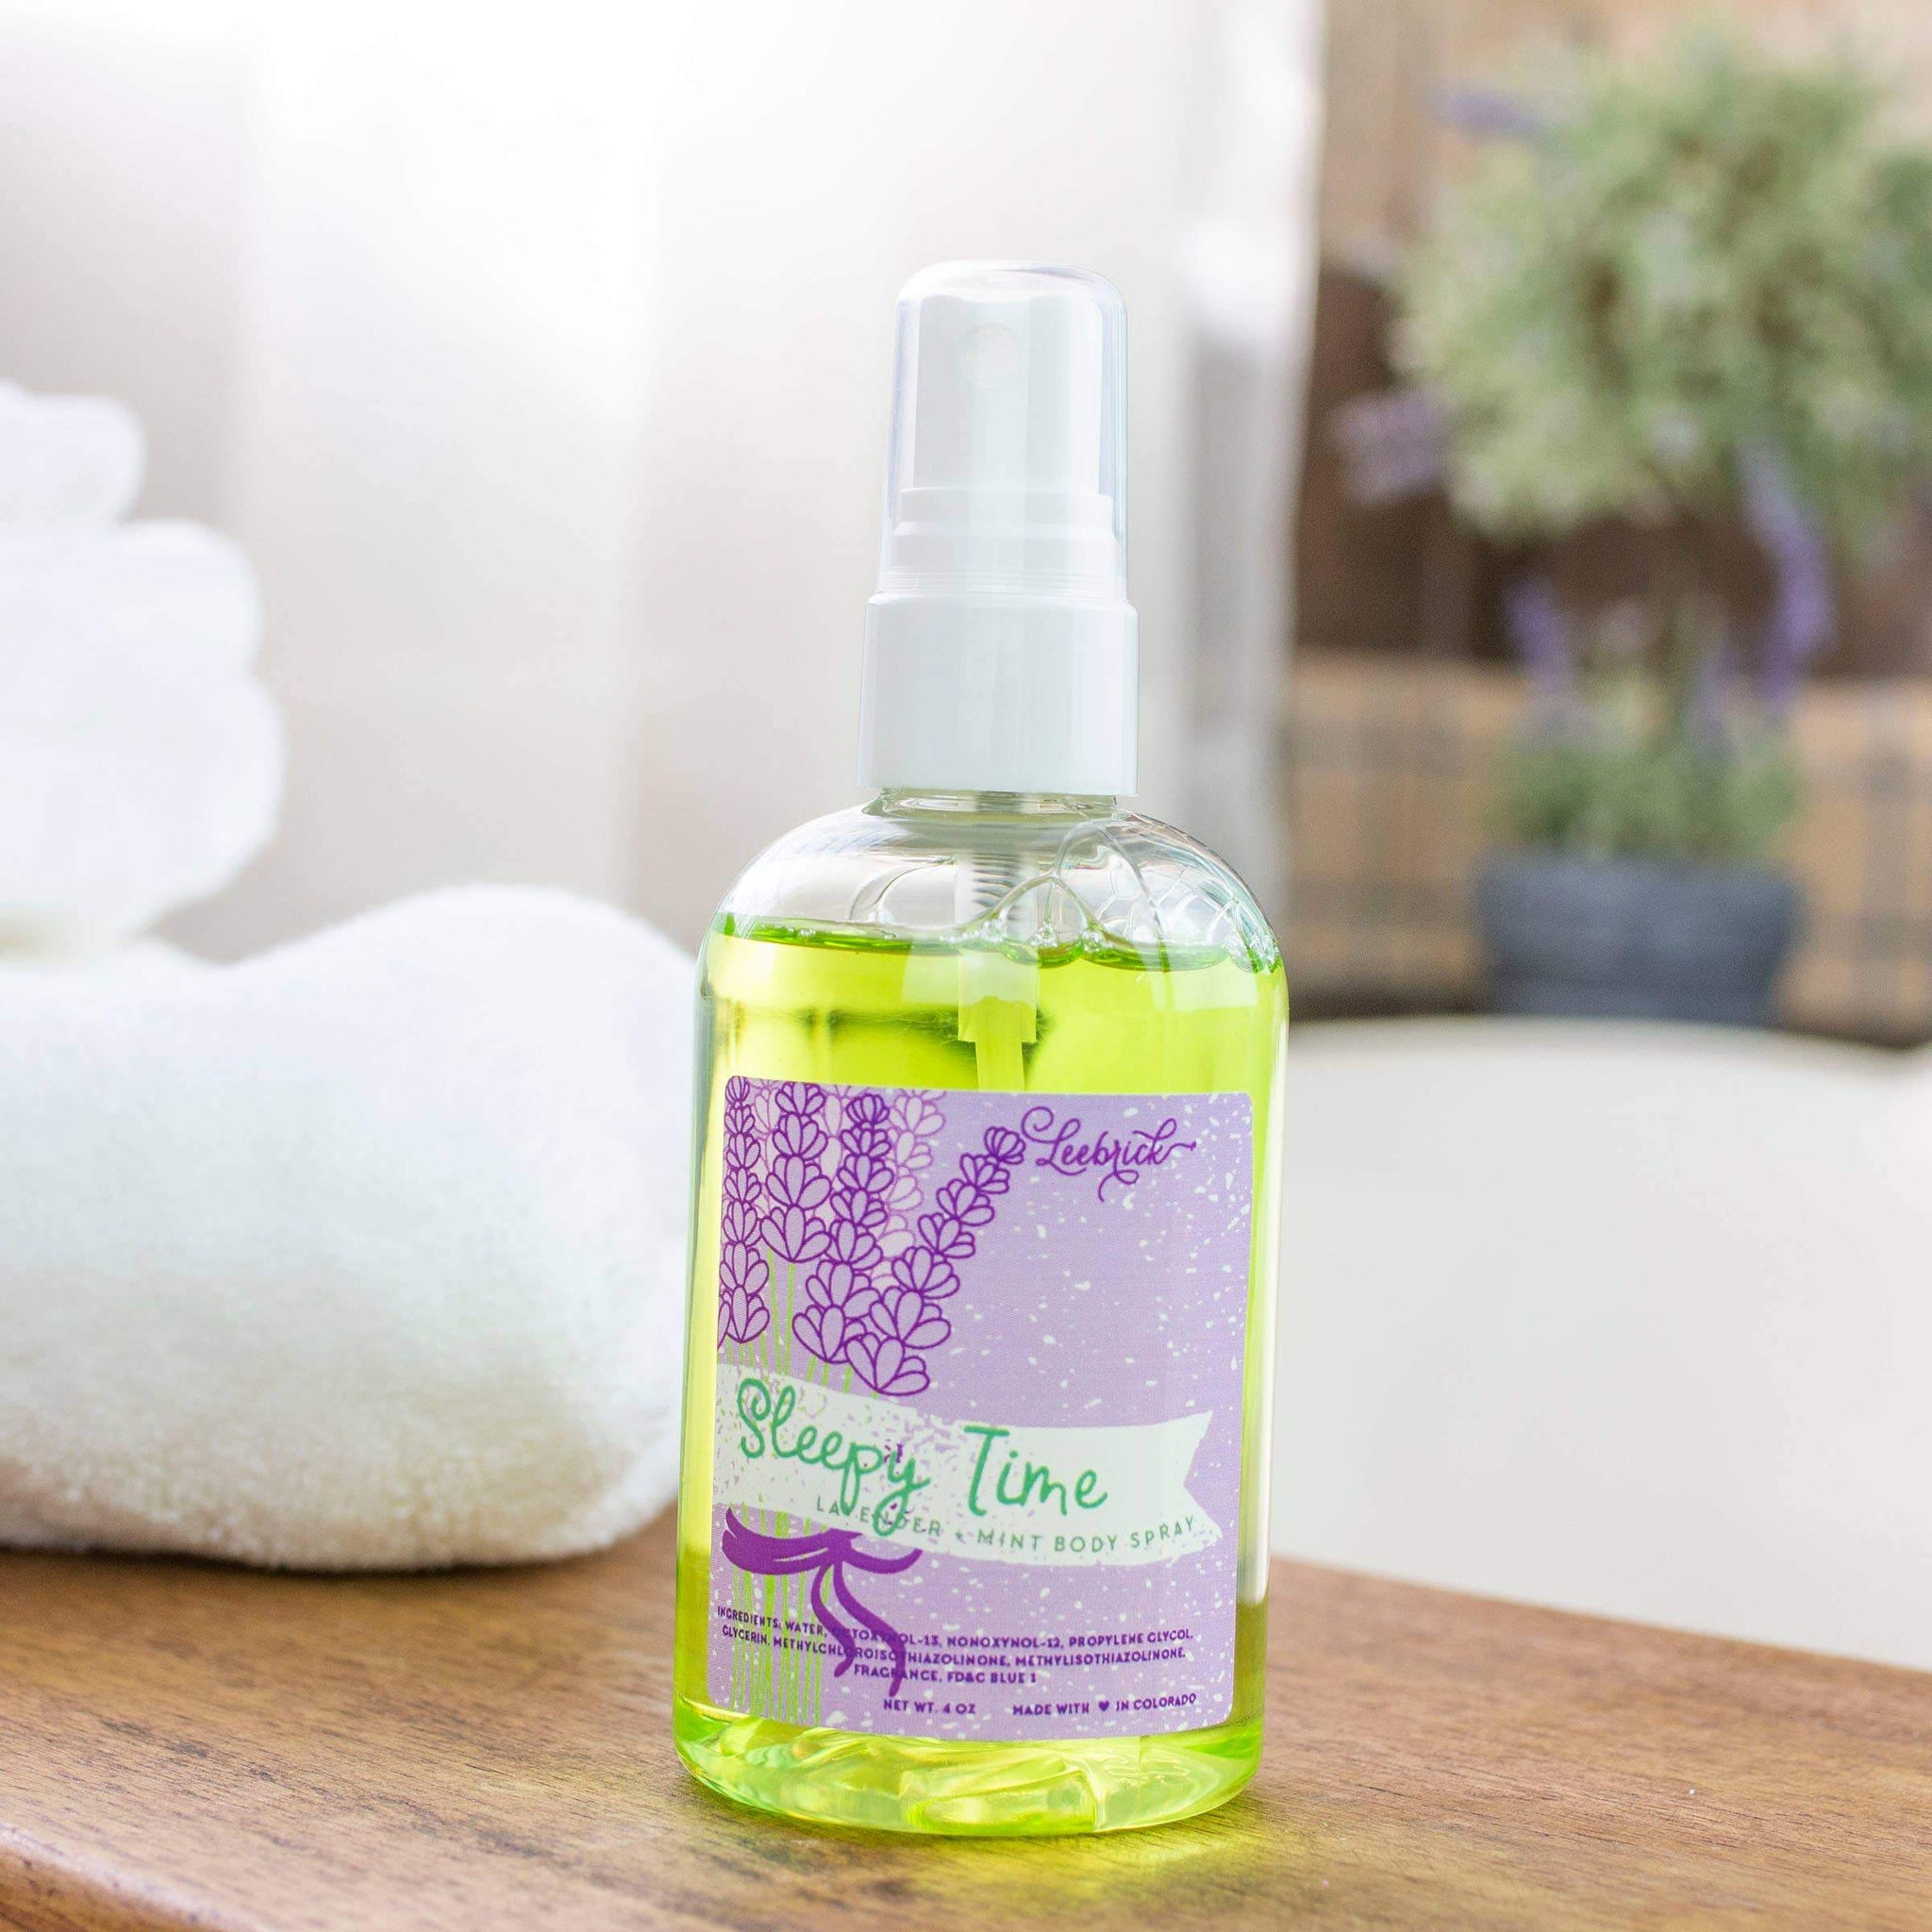 Sleepy Time (Lavender + Mint) Body Spray Spa Products Leebrick